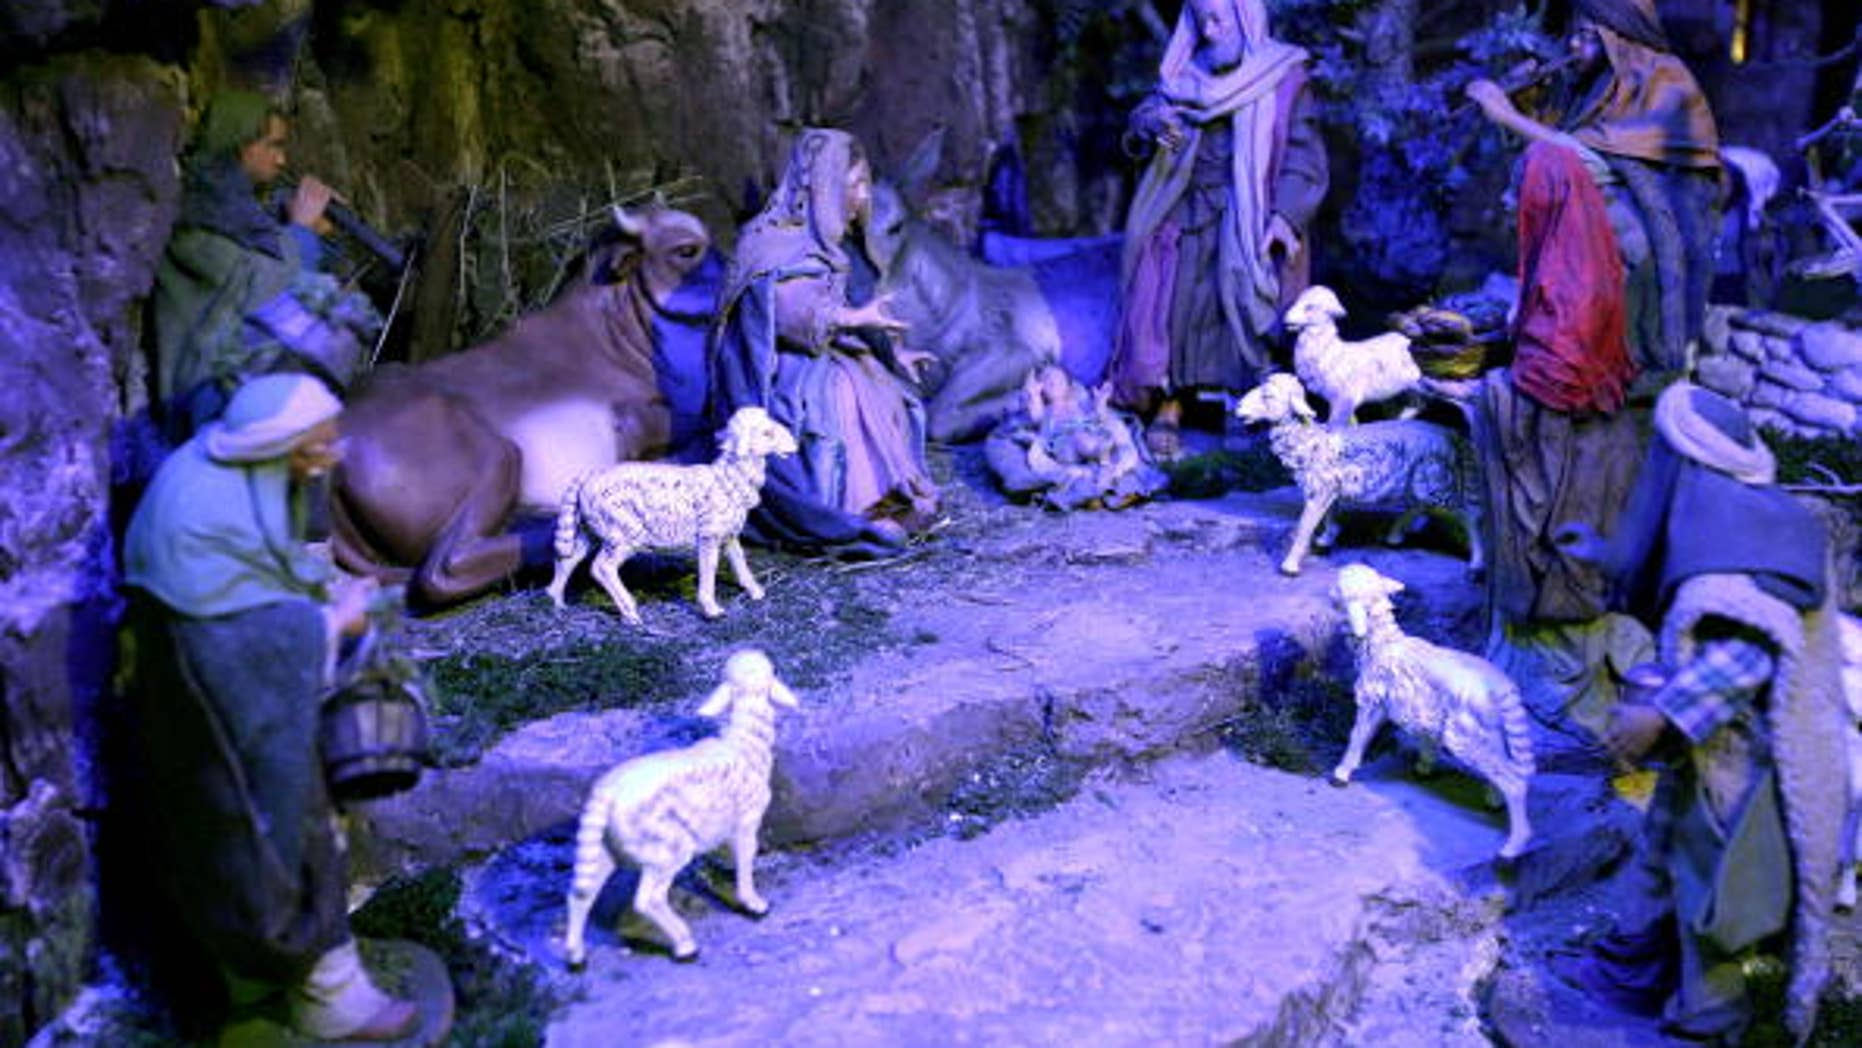 Andrés Vásquez and Felipe Cárdenas photographed their all-male nativity scene and posted the image on Facebook.